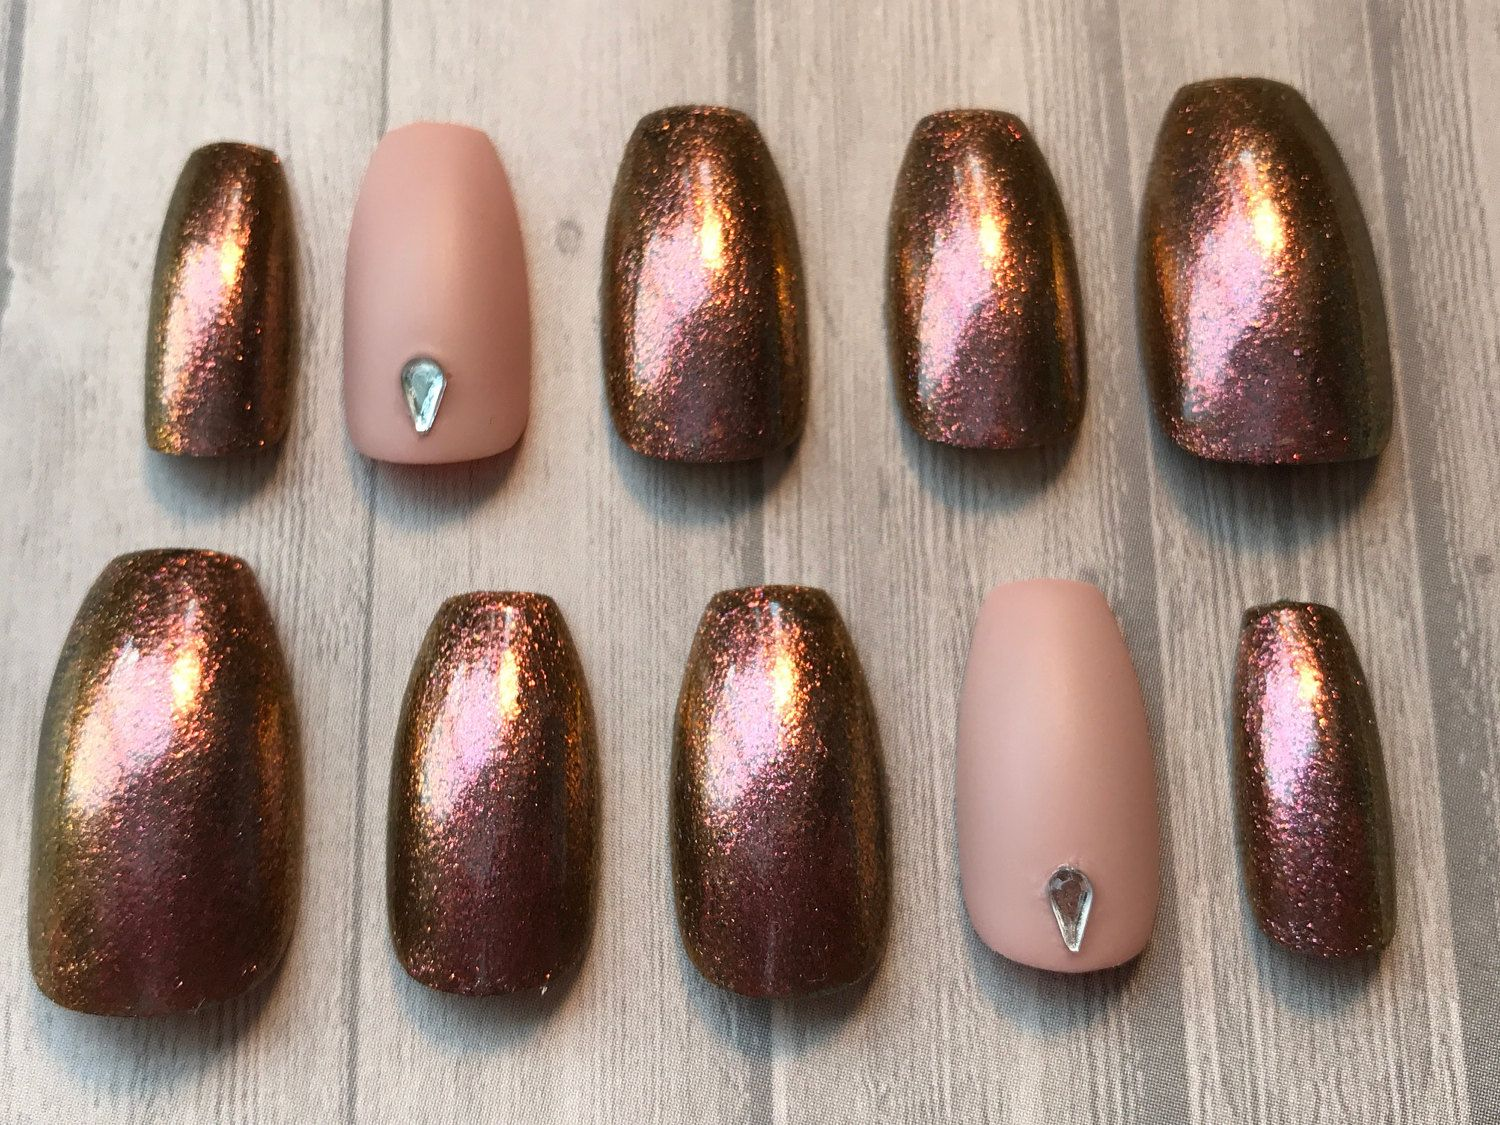 Iridescent and Matte Nails | Press On Nails | Glue On Nails | Any ...